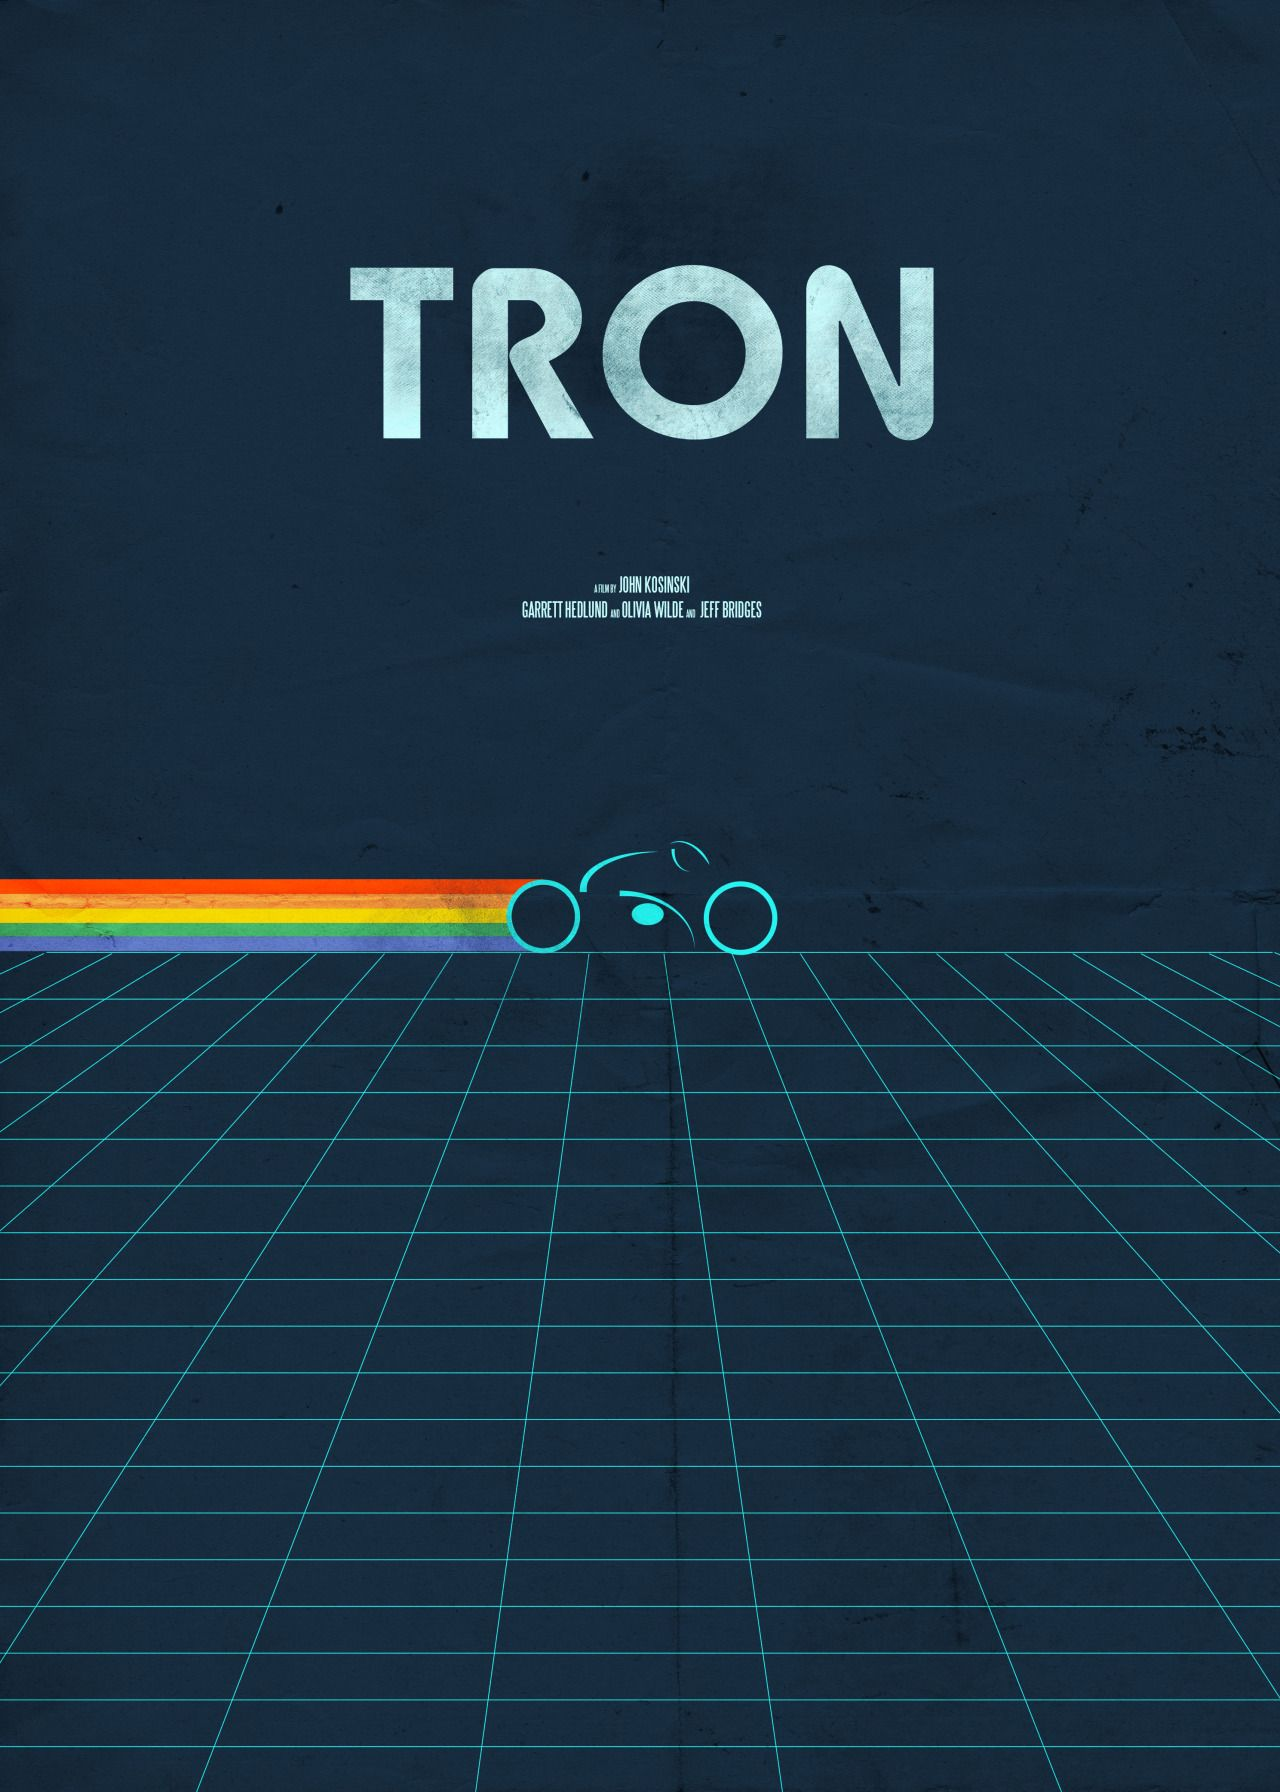 Pin By Kaico Heitor On Movie Posters Tron Art Movie Posters Famous Movie Posters